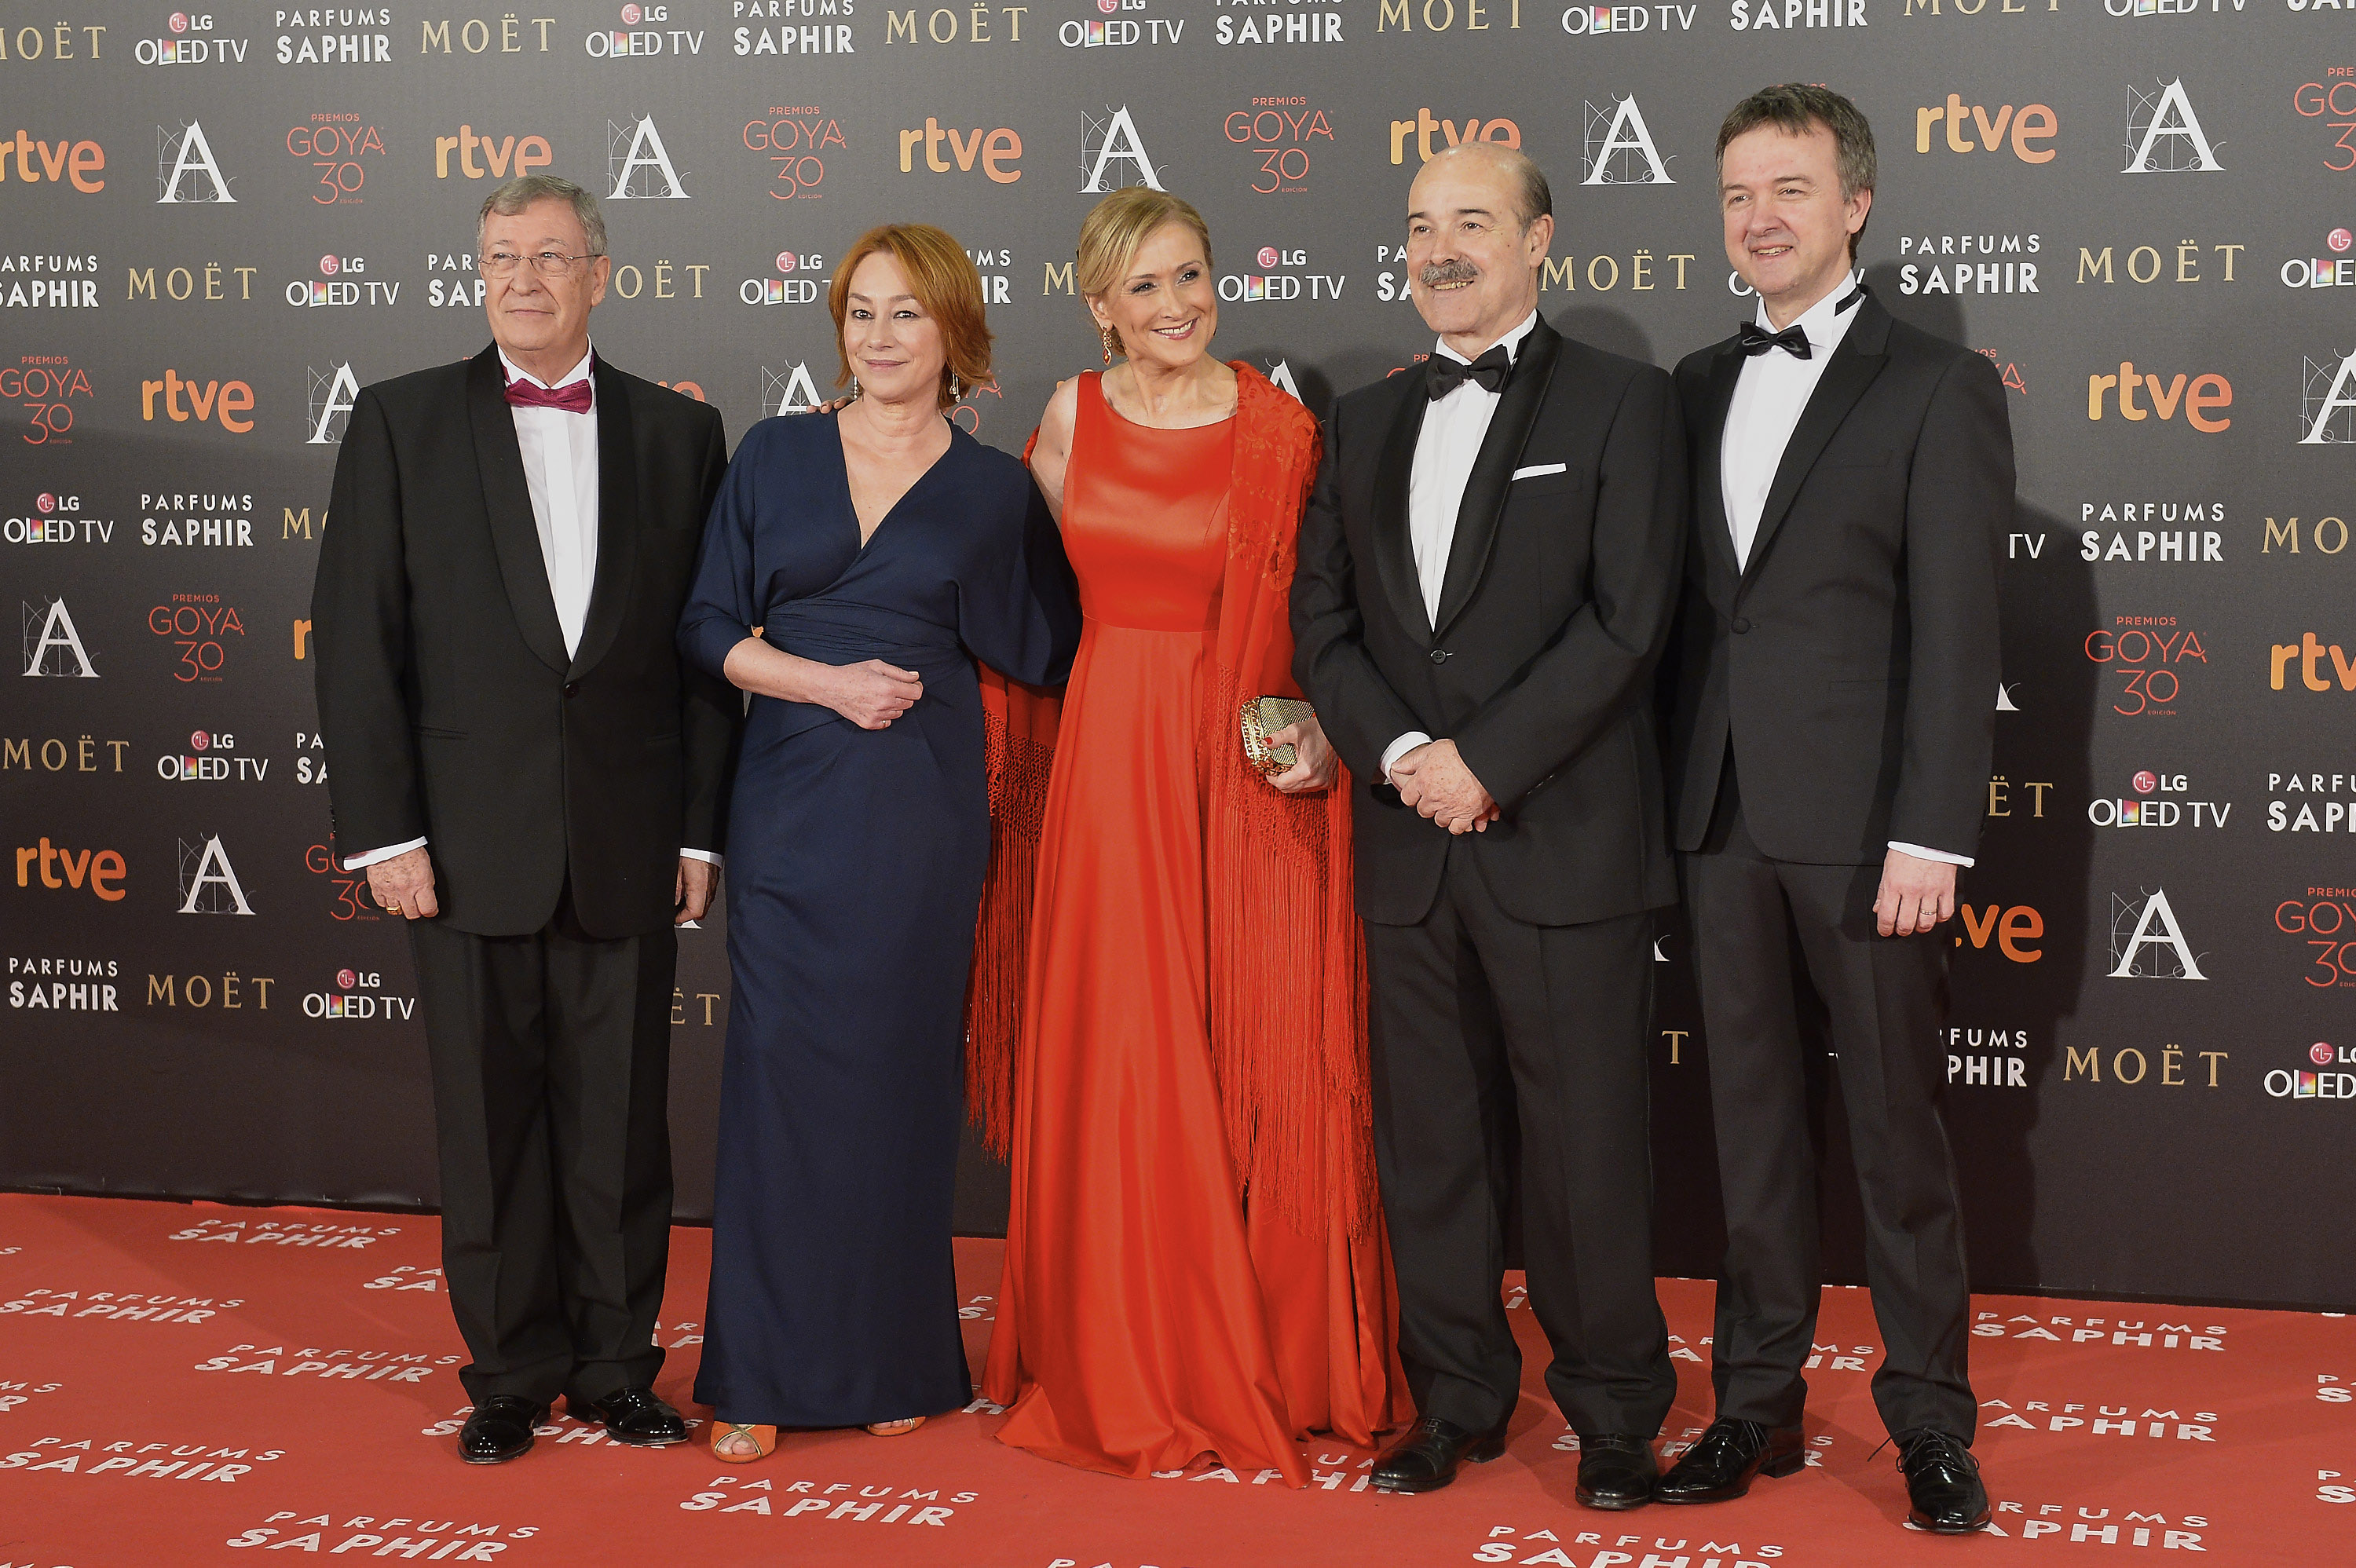 MADRID, SPAIN - FEBRUARY 06: (L-R) Porfirio Enriquez, Gracia Querejeta, Cristina Cifuentes, Antonio Resines and Edmon Roch attend the Goya Cinema Awards 2016 at Madrid Marriott Auditorium on February 6, 2016 in Madrid, Spain. (Photo by Carlos Alvarez/Getty Images)